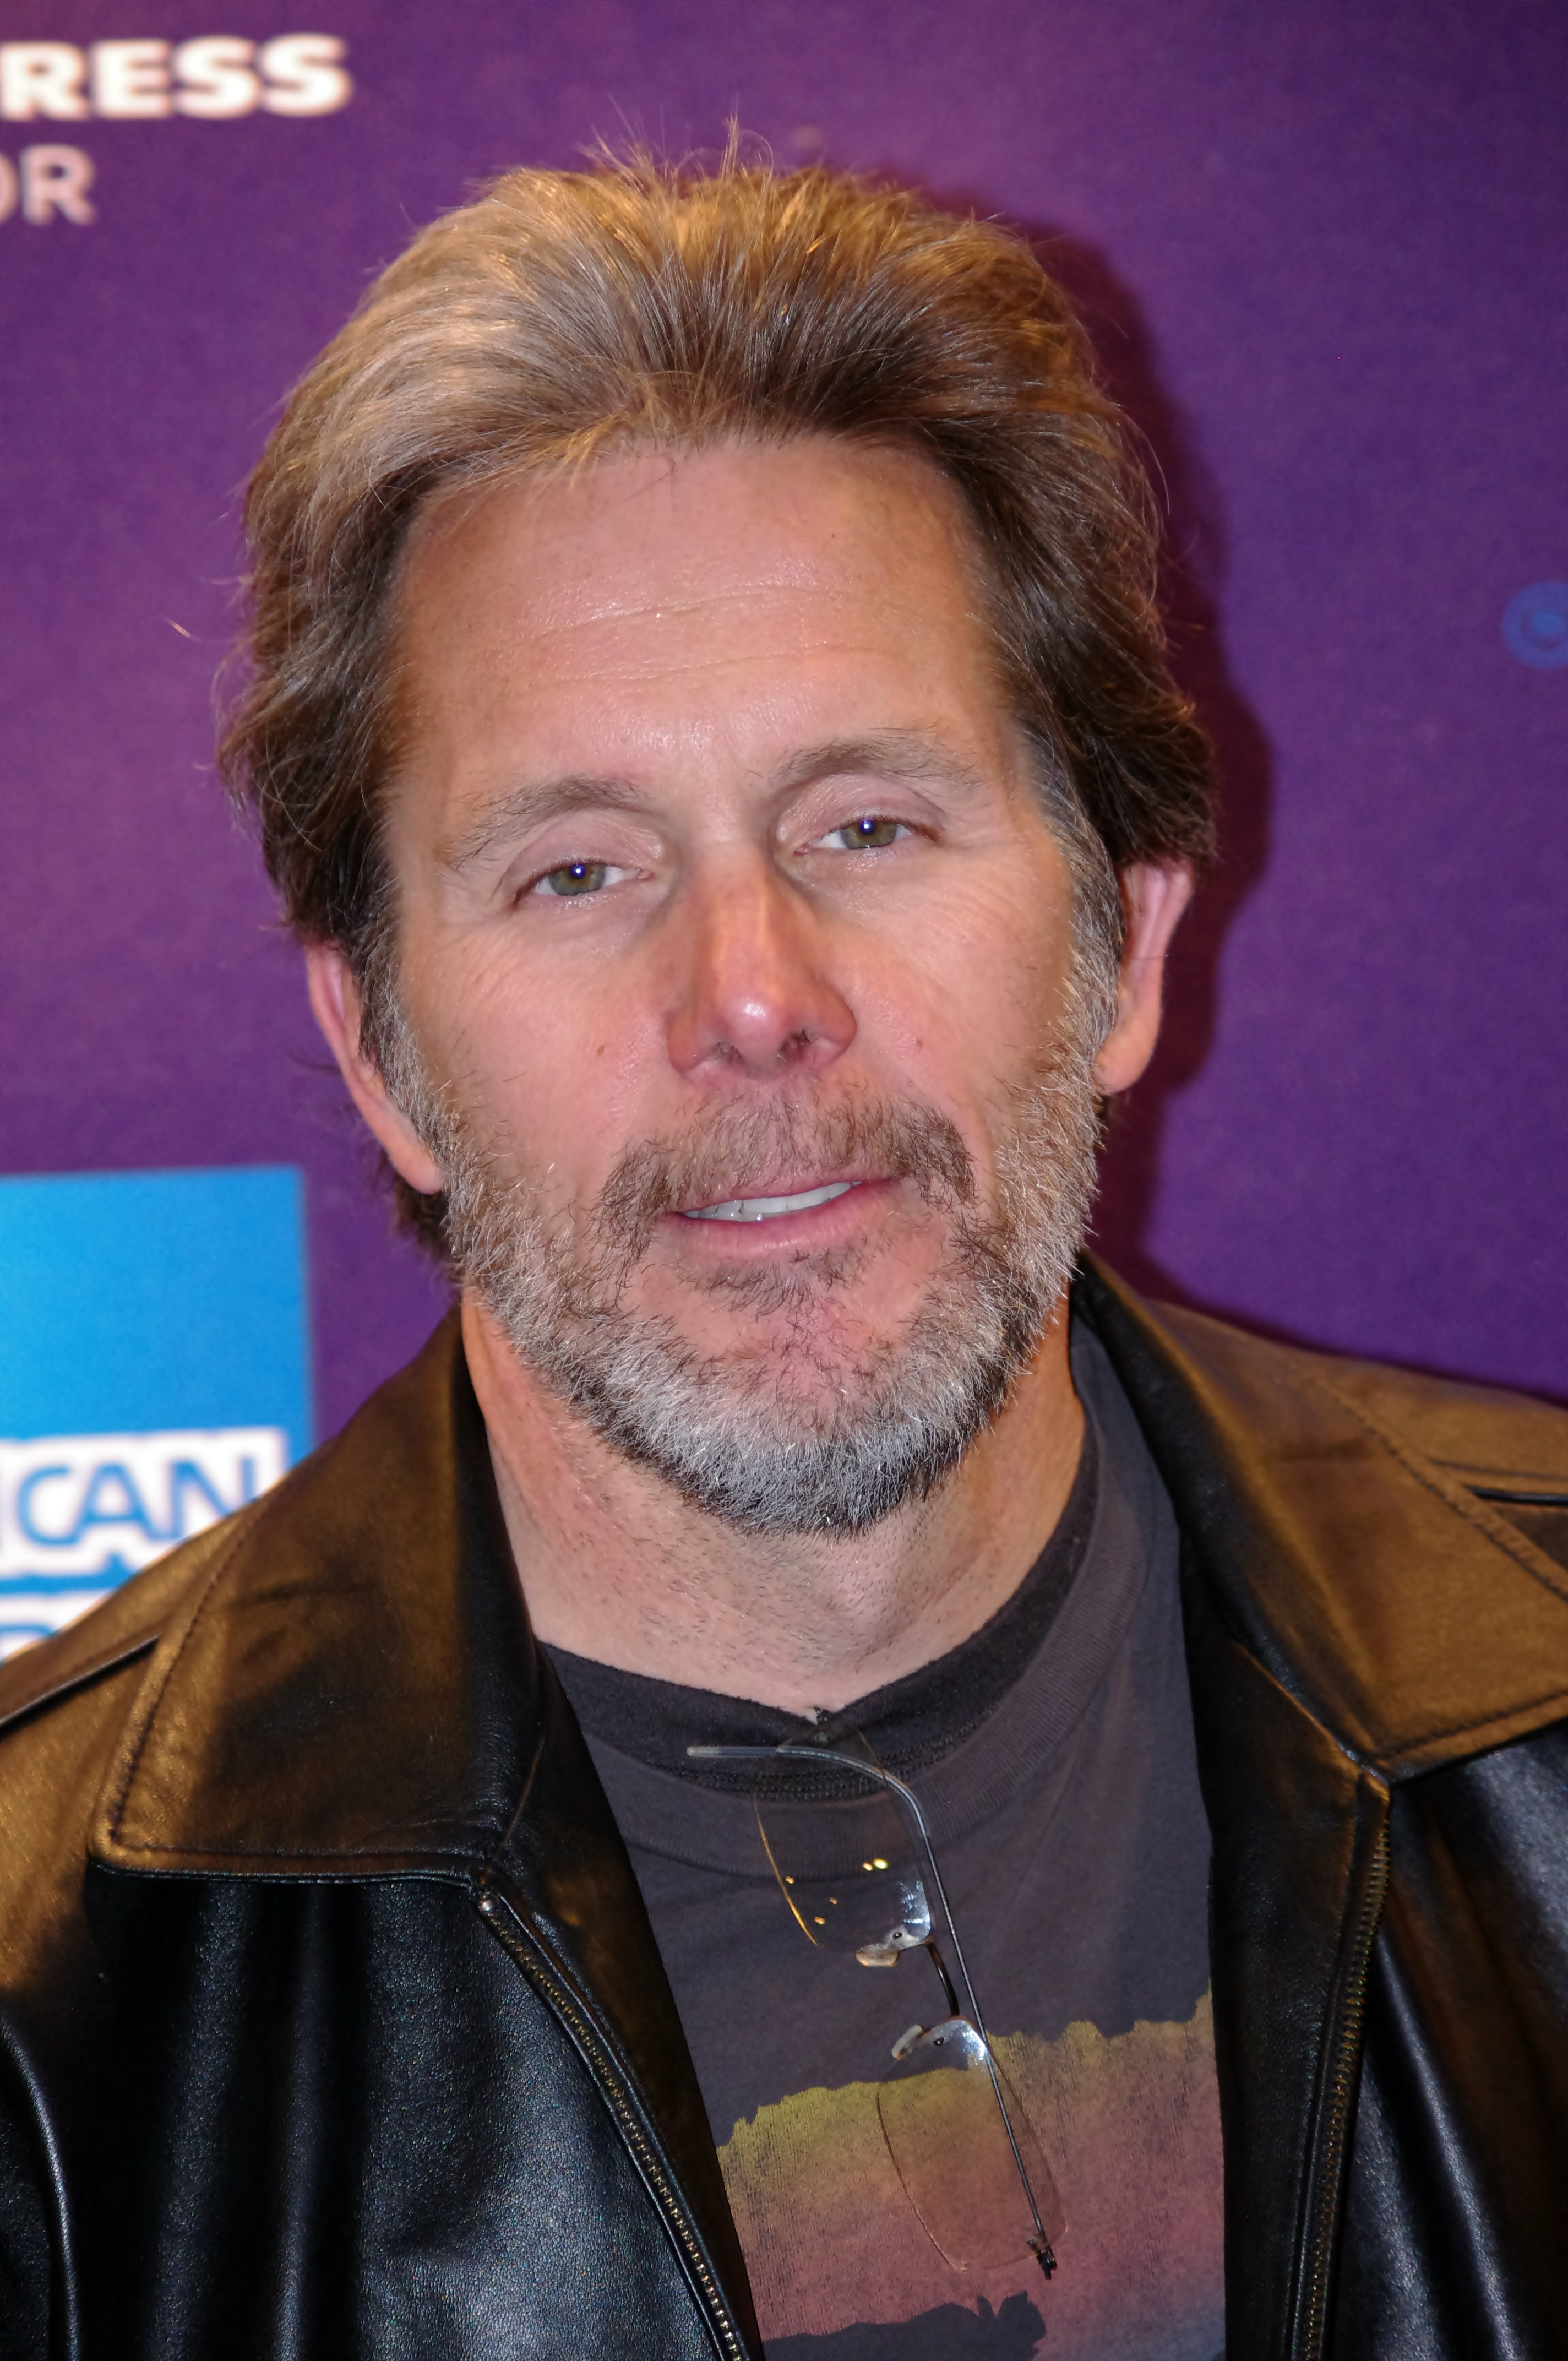 The 61-year old son of father (?) and mother(?) Gary Cole in 2018 photo. Gary Cole earned a  million dollar salary - leaving the net worth at 4 million in 2018